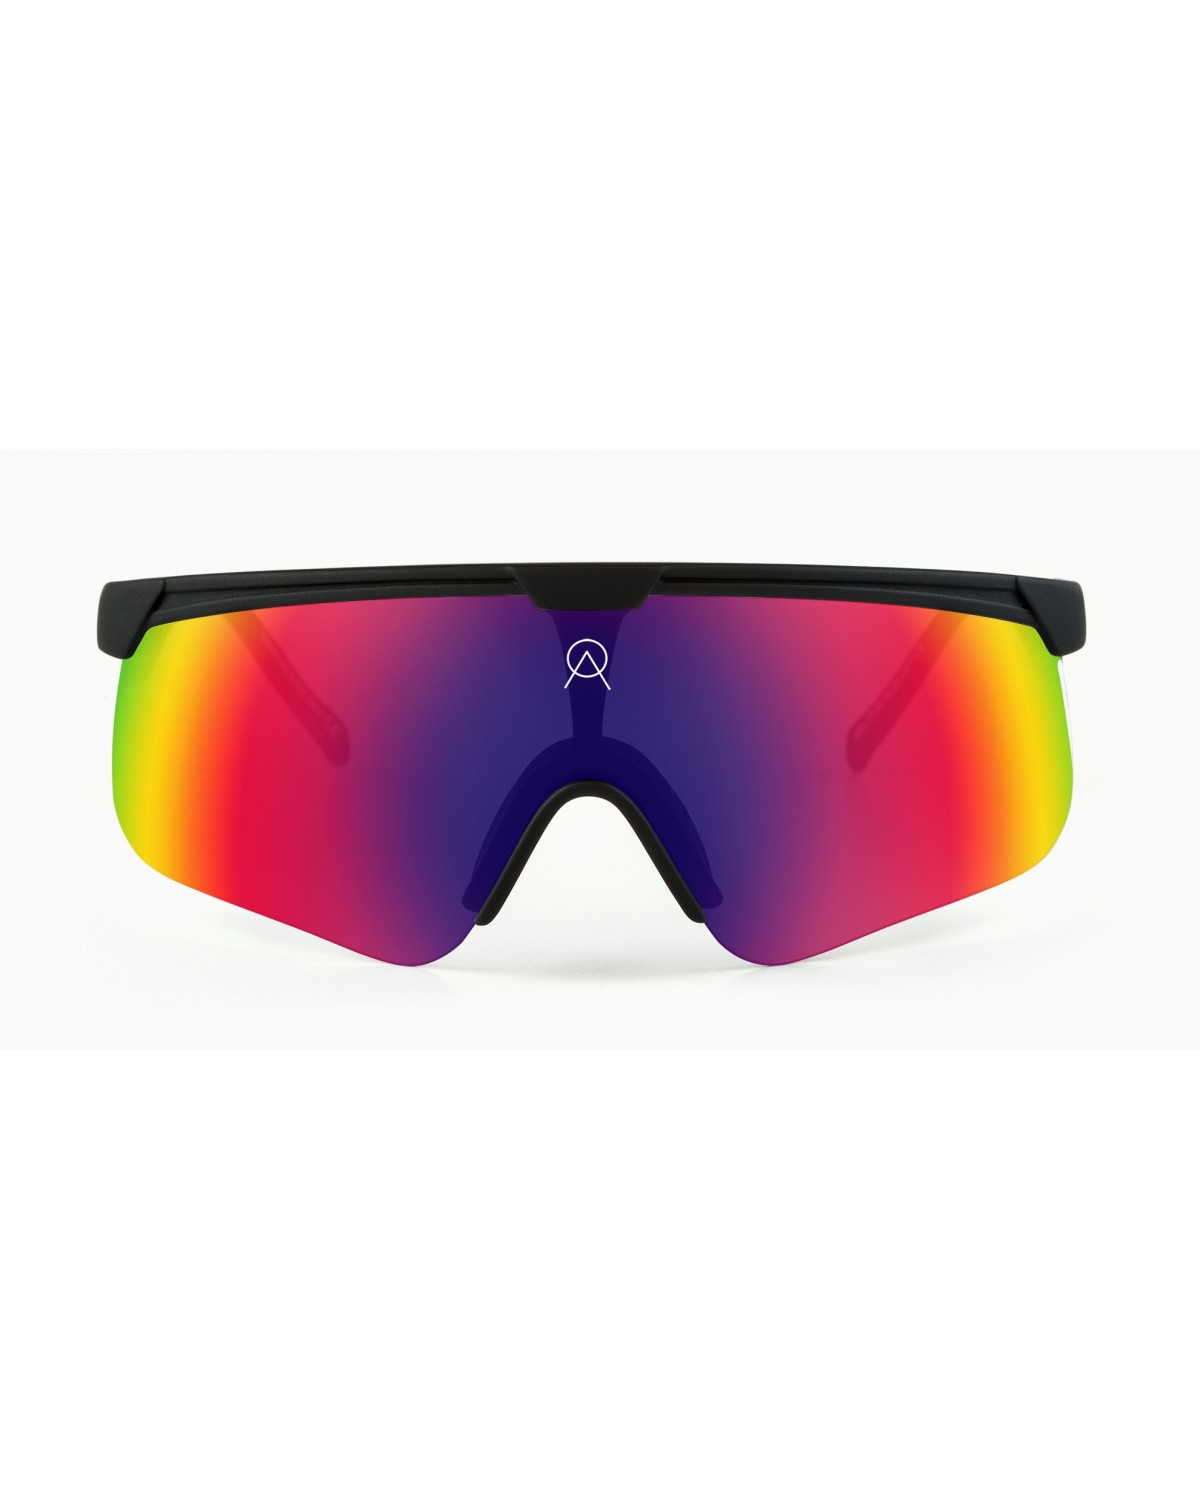 Alba Optics Delta Black Revo Pace Retro Radbrille